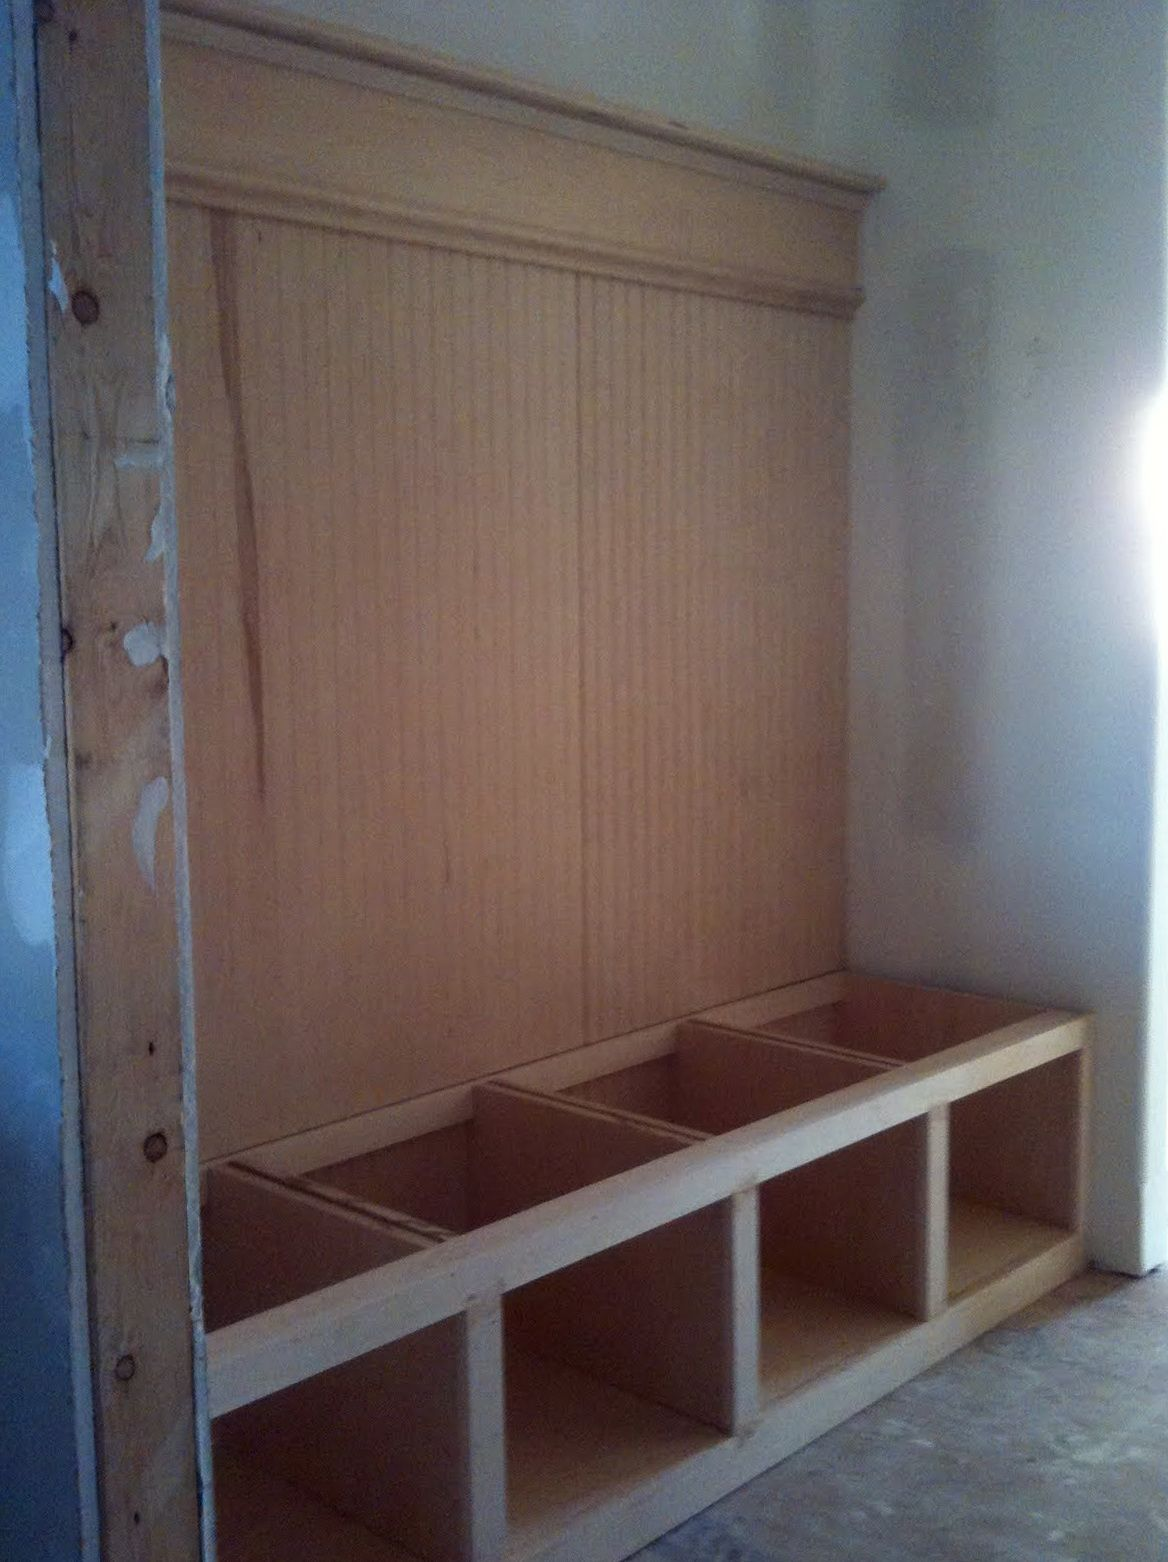 Mudroom Bench Woodworking Plans Do You Assume Mudroom Bench Woodworking Plans Looks Great Browse Everythi Woodworking Bench Plans Simple Room Home Remodeling